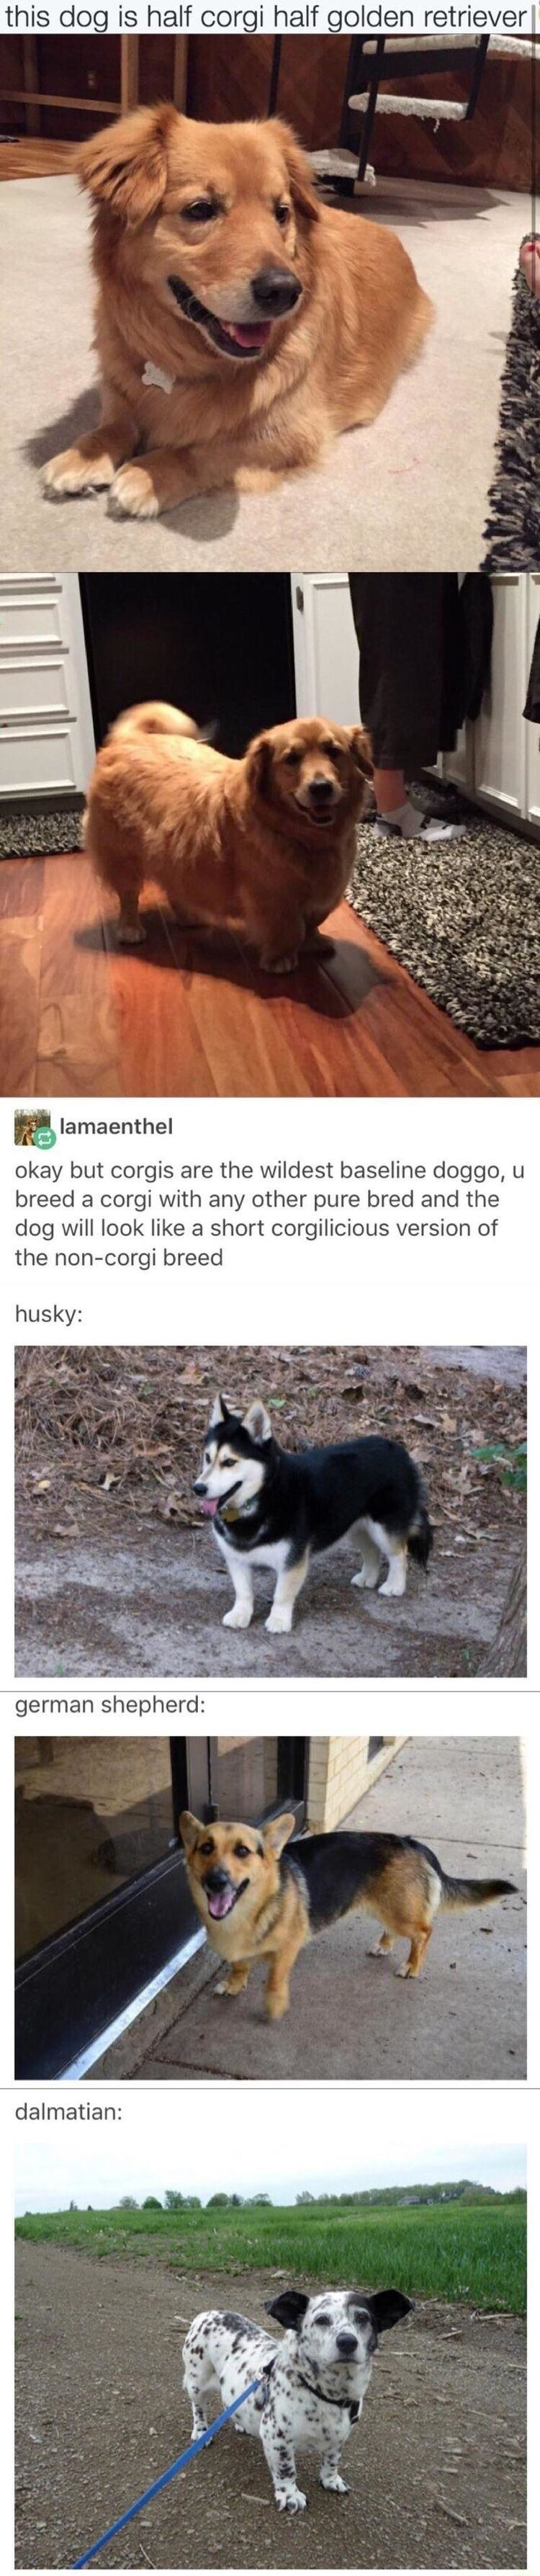 21 Corgi Posts That You Should Send To Your Best Friend Immediately